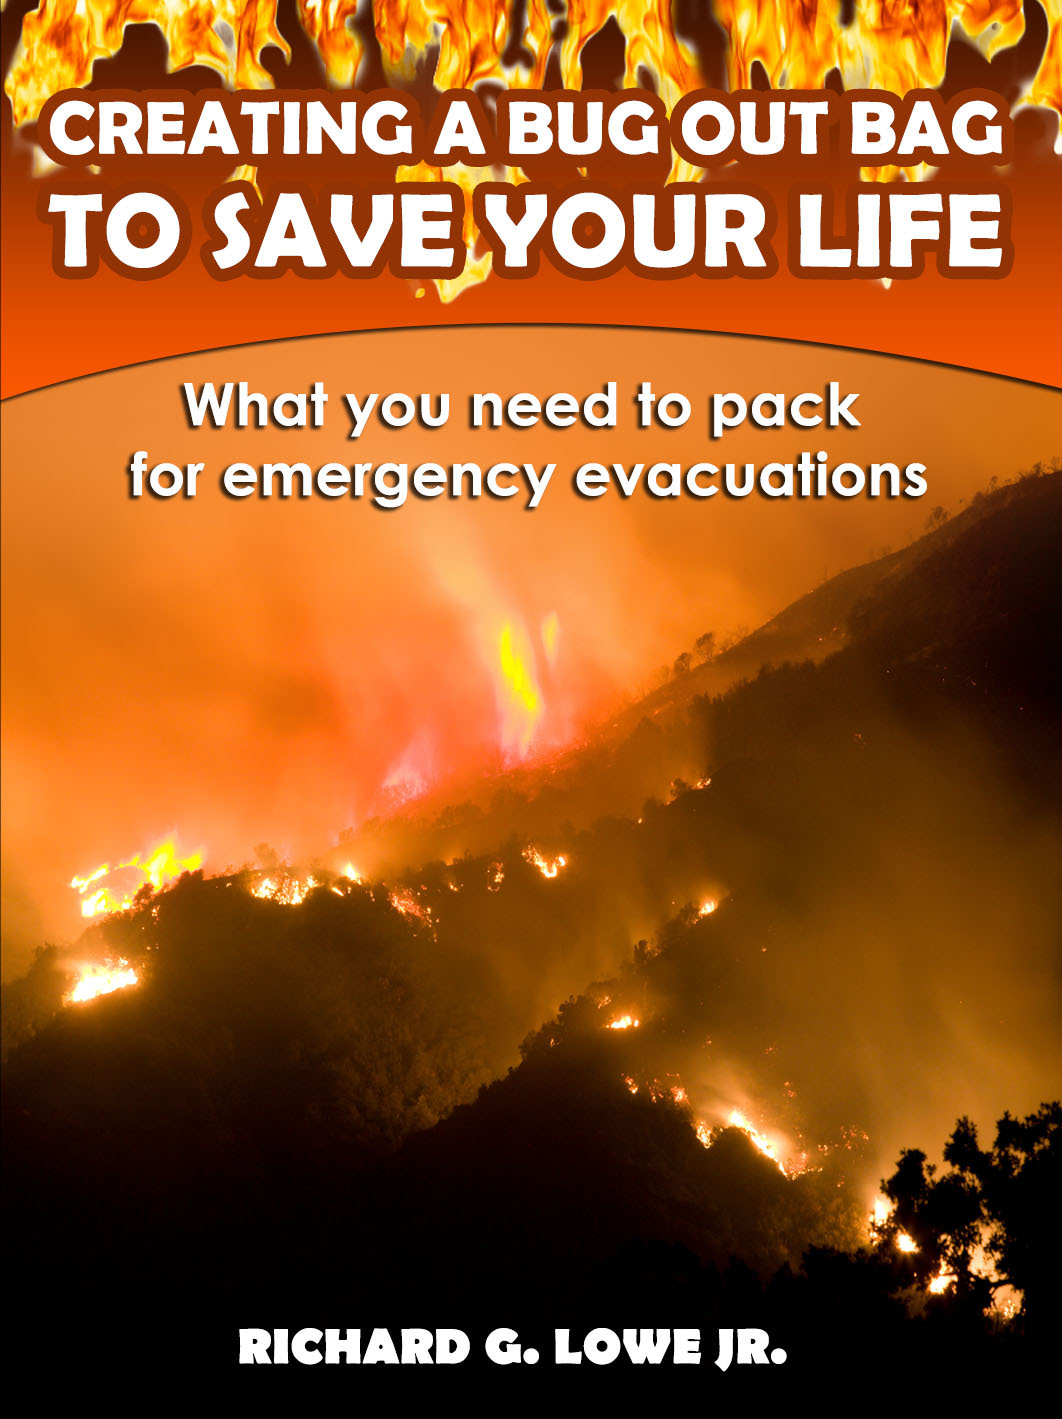 Creating a Bug Out Bag to Save Your Life: What you need to pack for emergency evacuations Richard G. Lowe Jr.